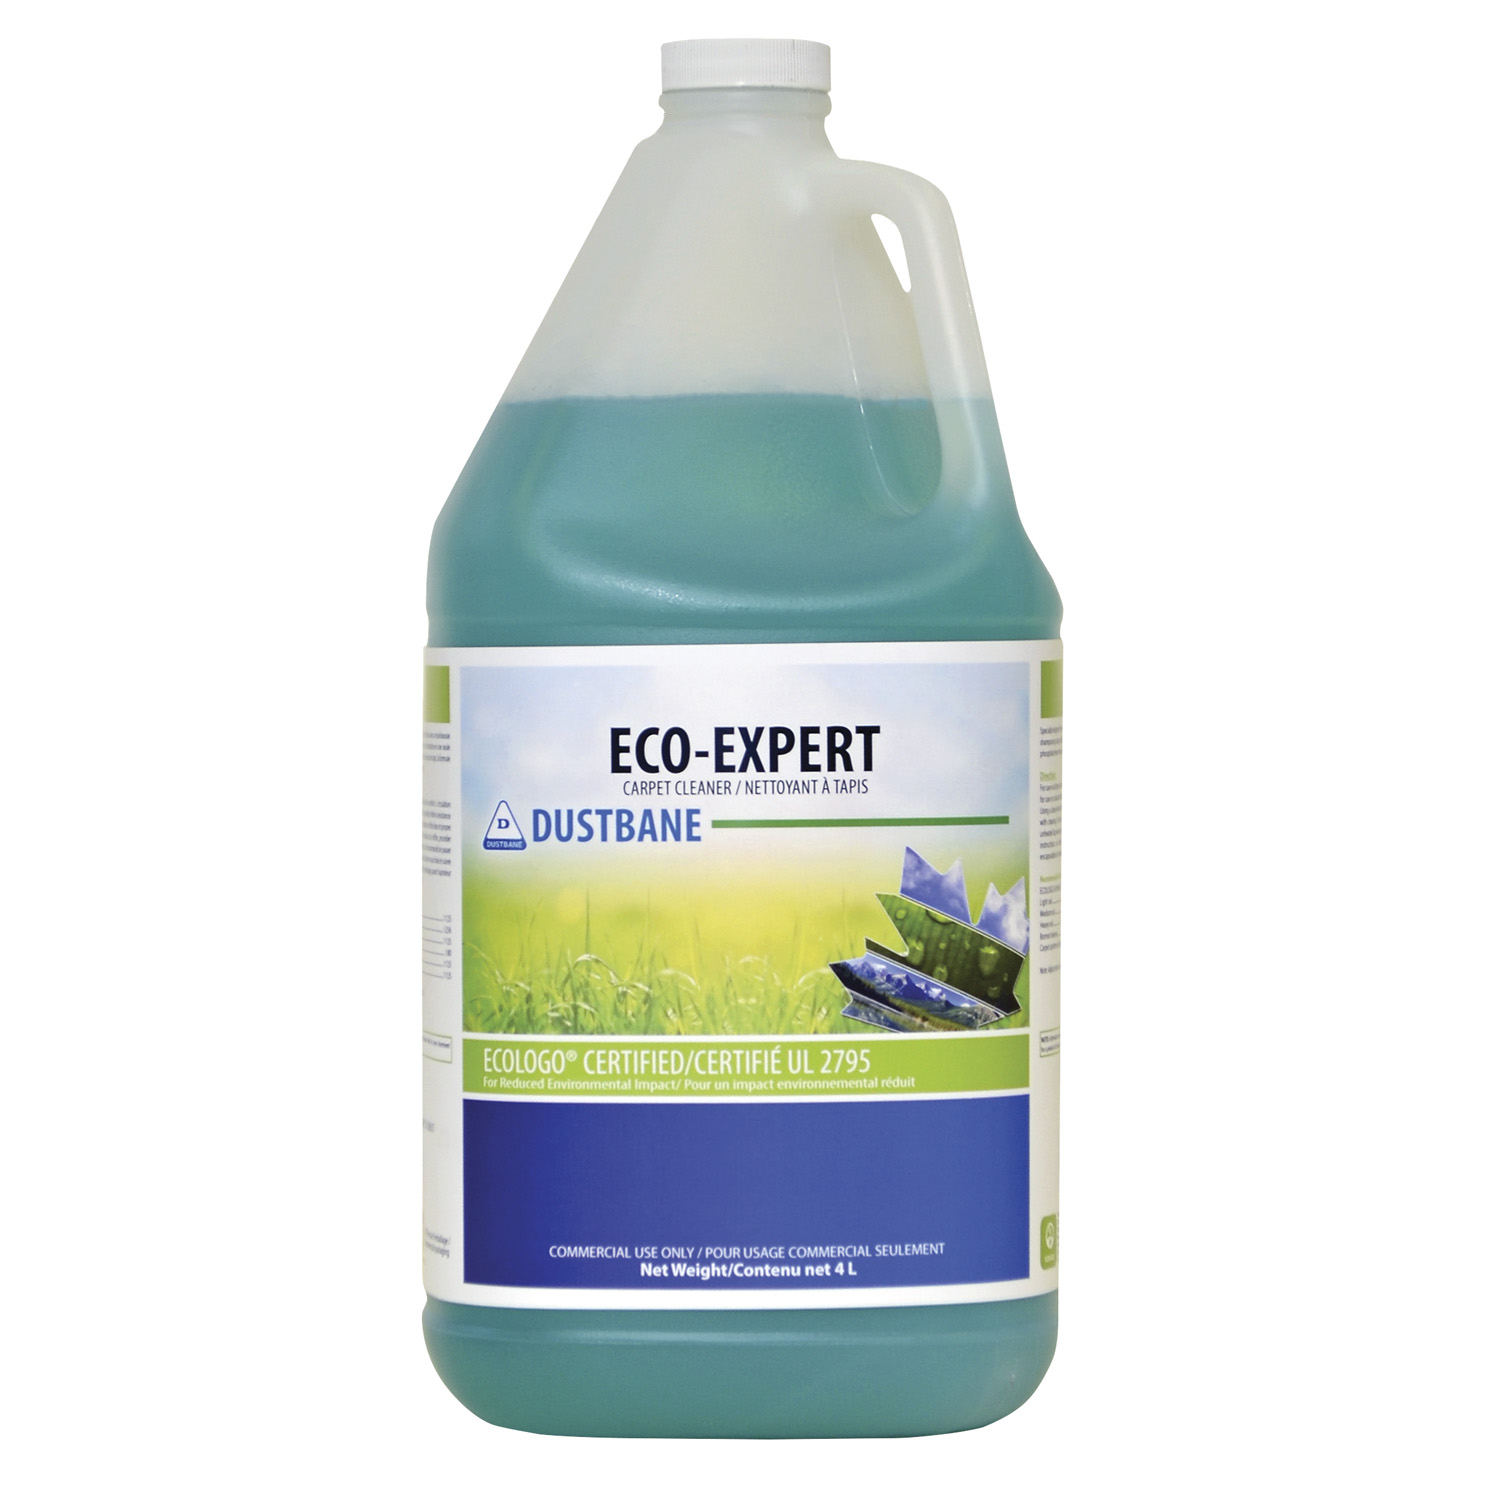 Dustbane Eco Expert Water Extraction Carpet Cleaner